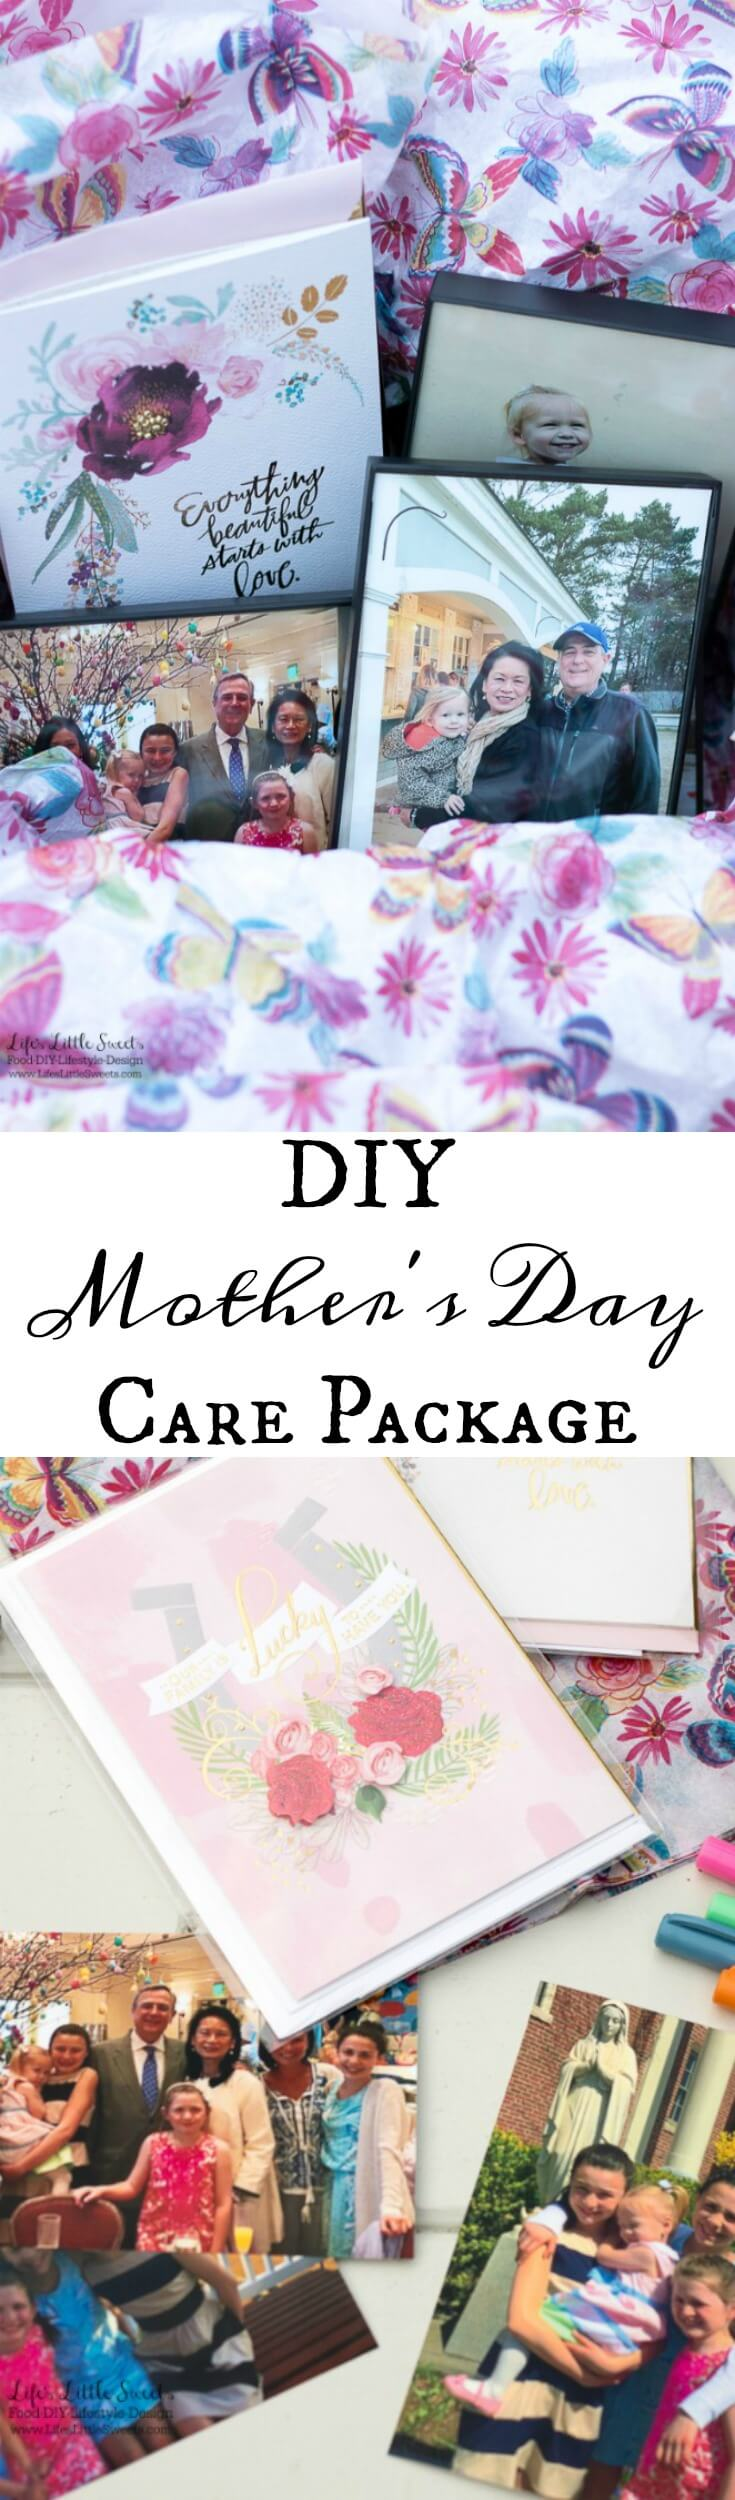 This DIY Mother's Day Care Package is a perfect, thoughtful gift for a Mother in your life! Fill a box with special, framed photos and you can complete your package with a Hallmark Signature card. #ad #HallmarkForMom #CollectiveBias @walmart @hallmark www.LifesLittleSweets.com